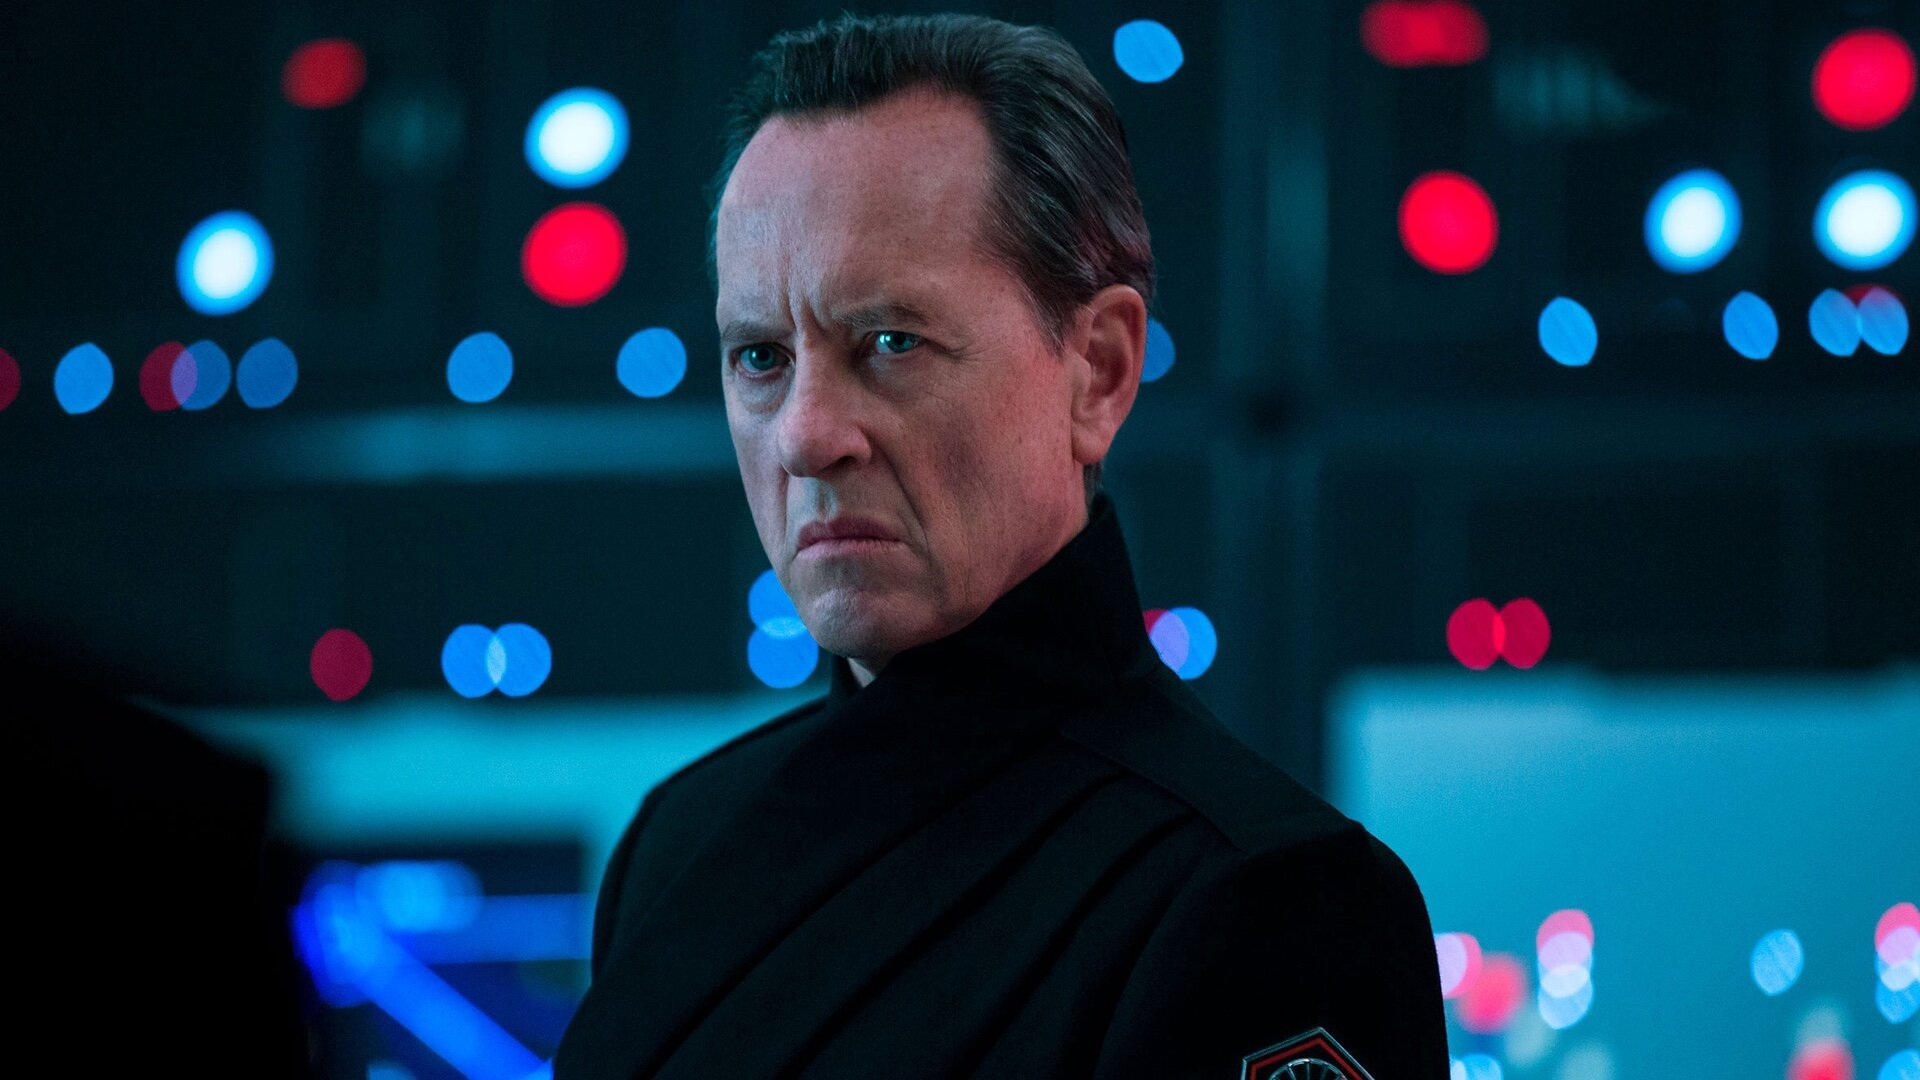 Richard E. Grant as Allegiant General Pryde in Star Wars: rise of skywalker